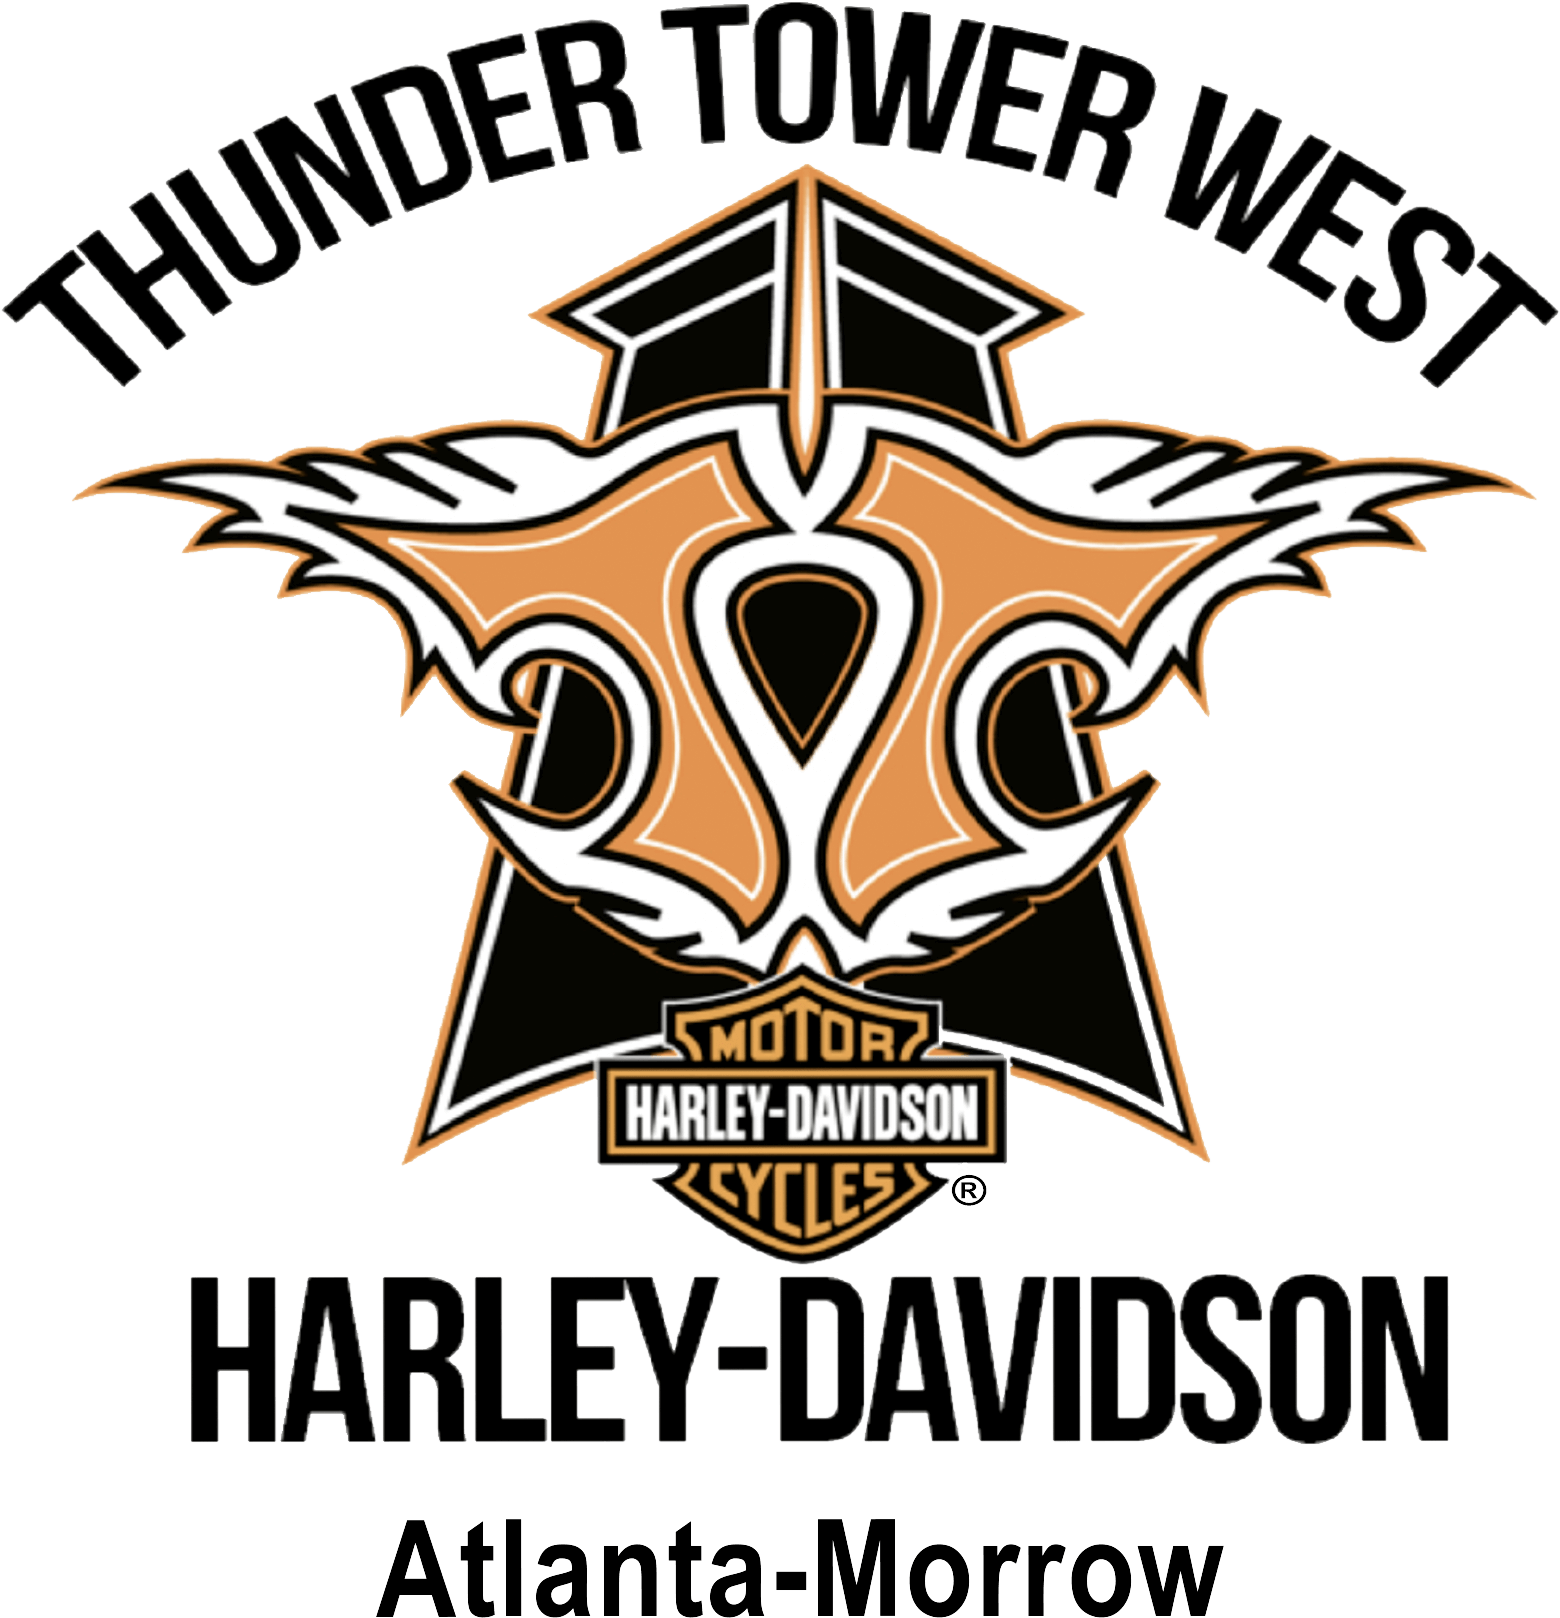 Thunder Tower West Harley-Davidson® logo